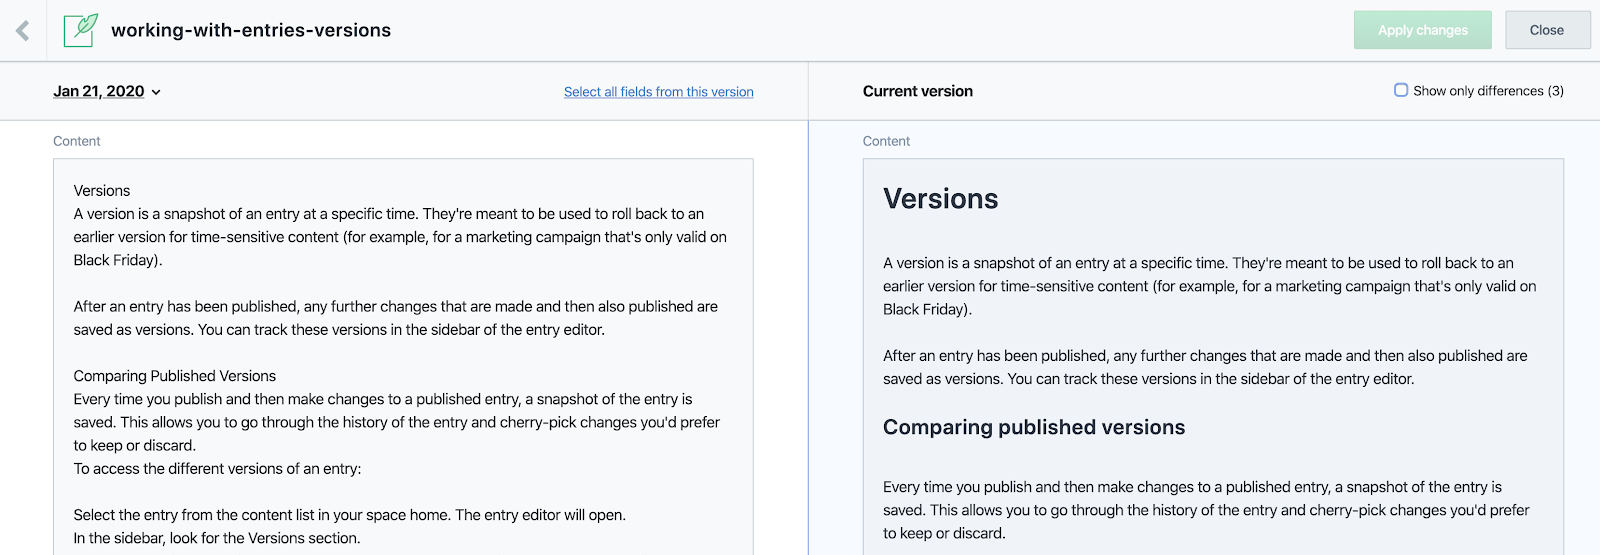 Previous and current version of content in CMS